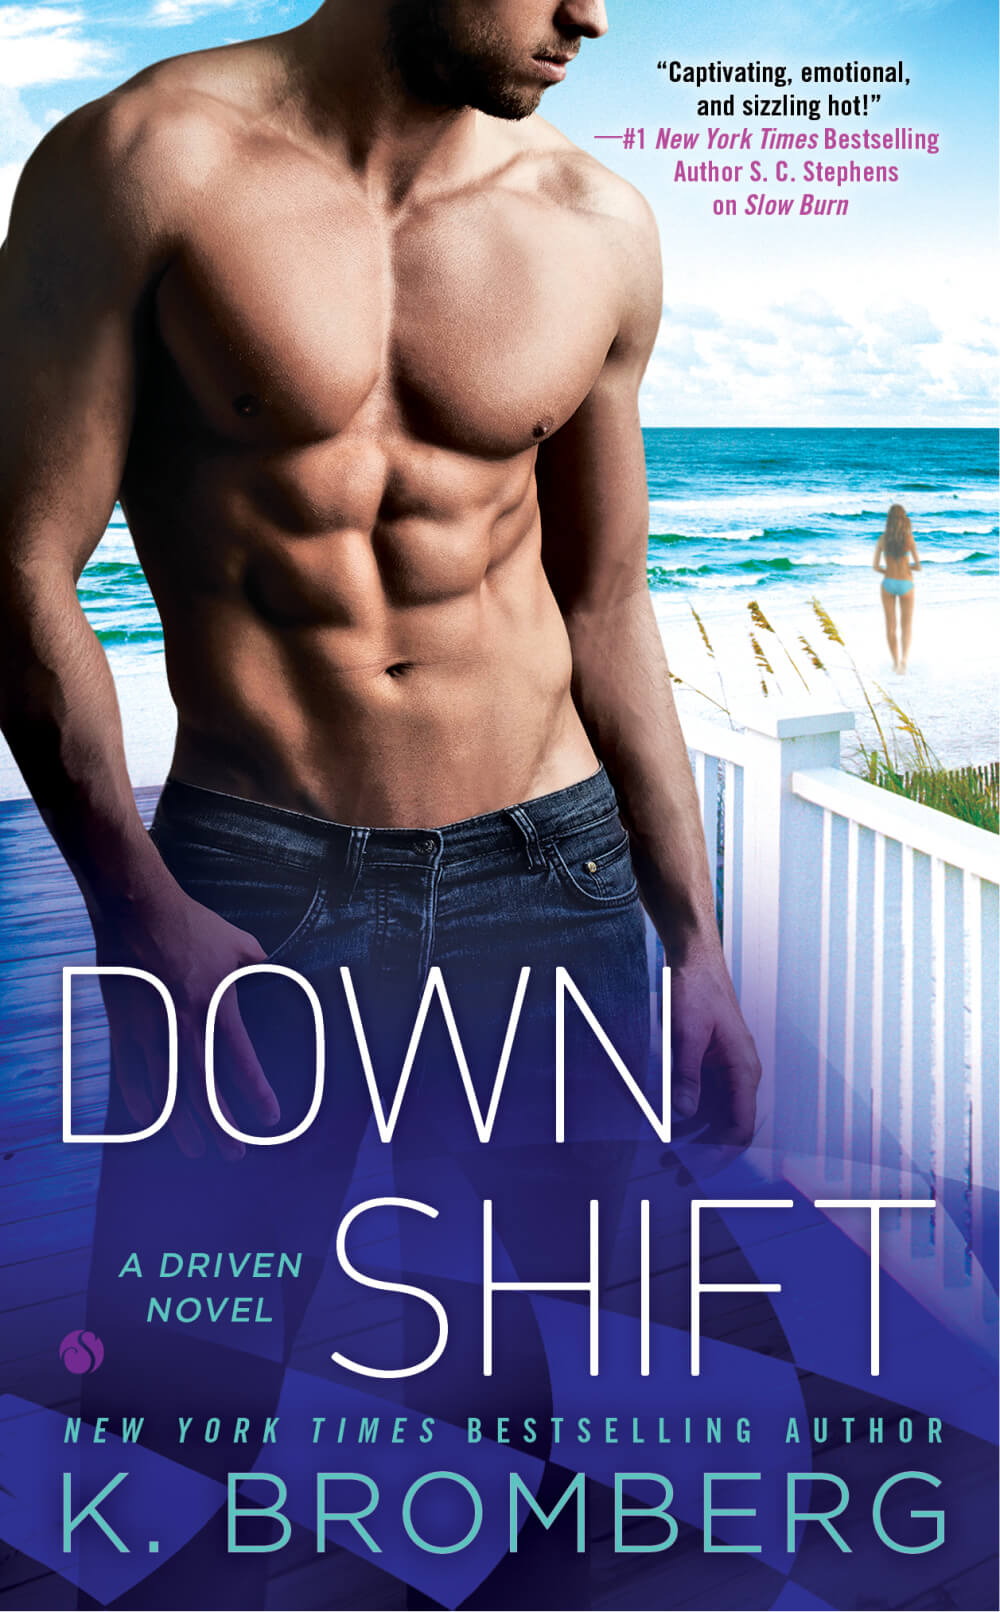 Down Shift by K. Bromberg: Review